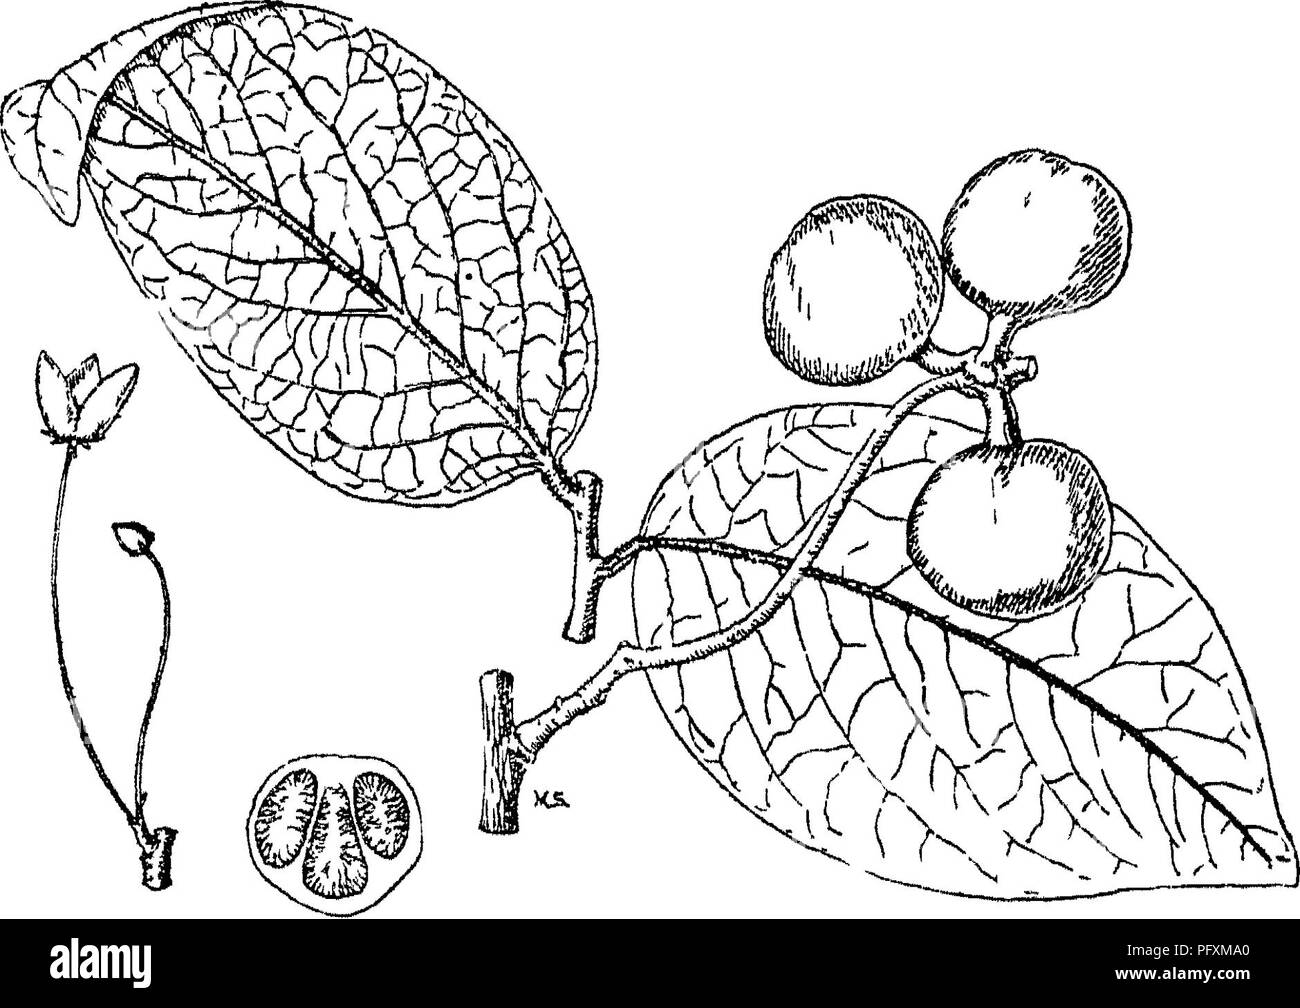 . Indian trees : an account of trees, shrubs, woody climbers, bamboos, and palms indigenous or commonly cultivated in the British Indian Empire. Trees. Saccopetaliim] IV. ANONACE^. 1. S. tomentosum, Hook. f. & Thorns.; Bedd. Fl. Sylv. t. 30 ; Ic. PL Ind Or. t. 49; Ann. iv. t. 207.âSyn. Uvarla tomentosa, Uoxb. Cor. PI. t. 35. Vern. Kari^ UnibL Ildni. , Hin- Gonda CJriya; dudu.. di, Mar. South ; ]}cdaso^ Ch ilka â Tel.; Hessare^ Kan. A large tree, branchletstomen- to&e. Pull grown leaves glabrous, excepting midrib, 3-6 in. long, ovate oblong. PI. soli- tary or in pairs, pedicels hairy, v - Stock Image